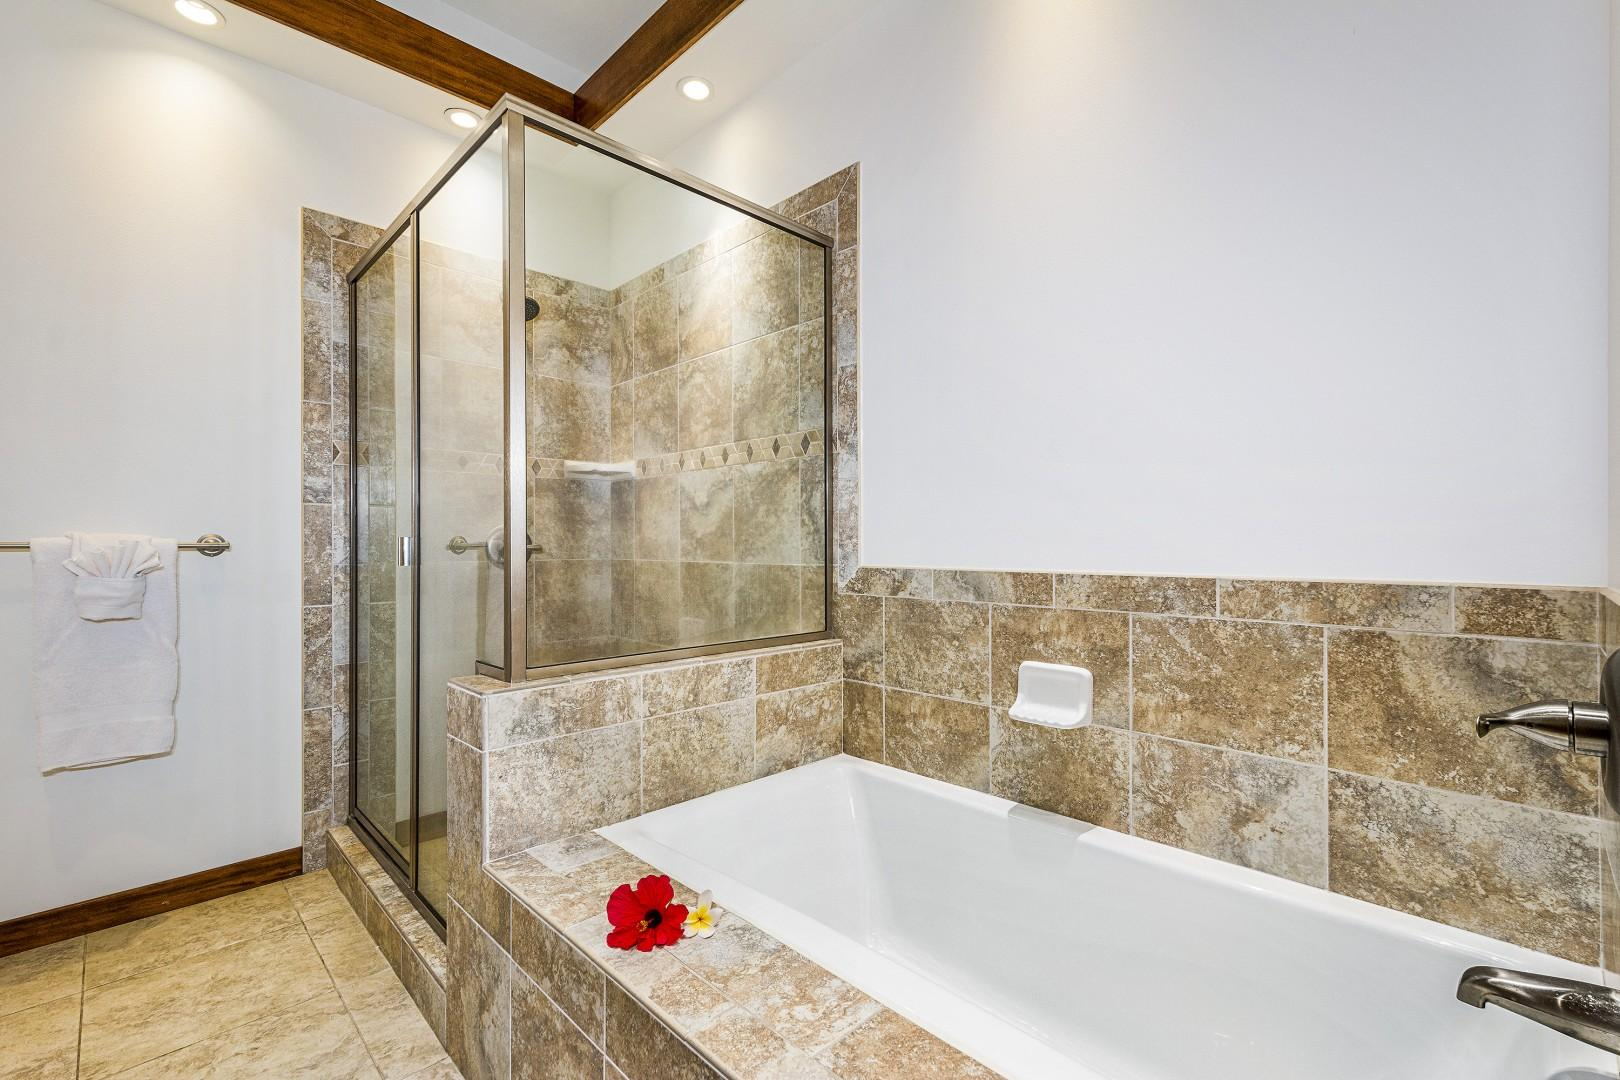 Large soaking tub and standing shower